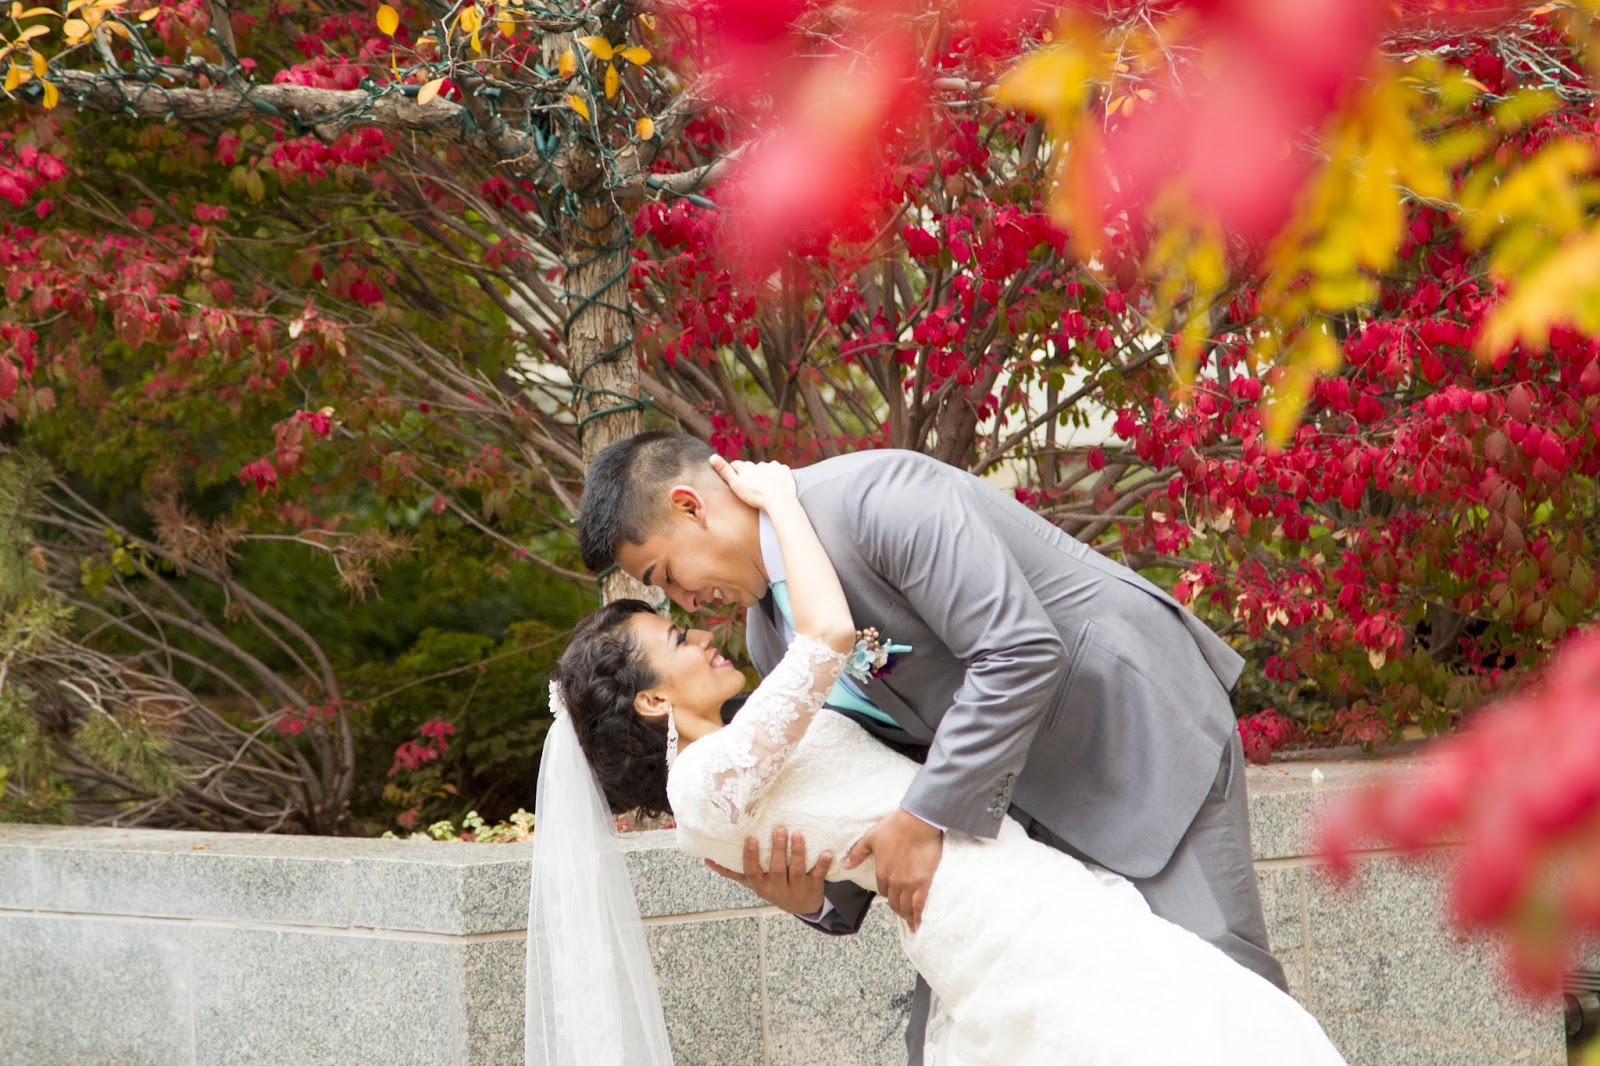 Everything You Need To Plan Your Perfect Wedding Beautiful Day For A Wedding In Salt Lake City